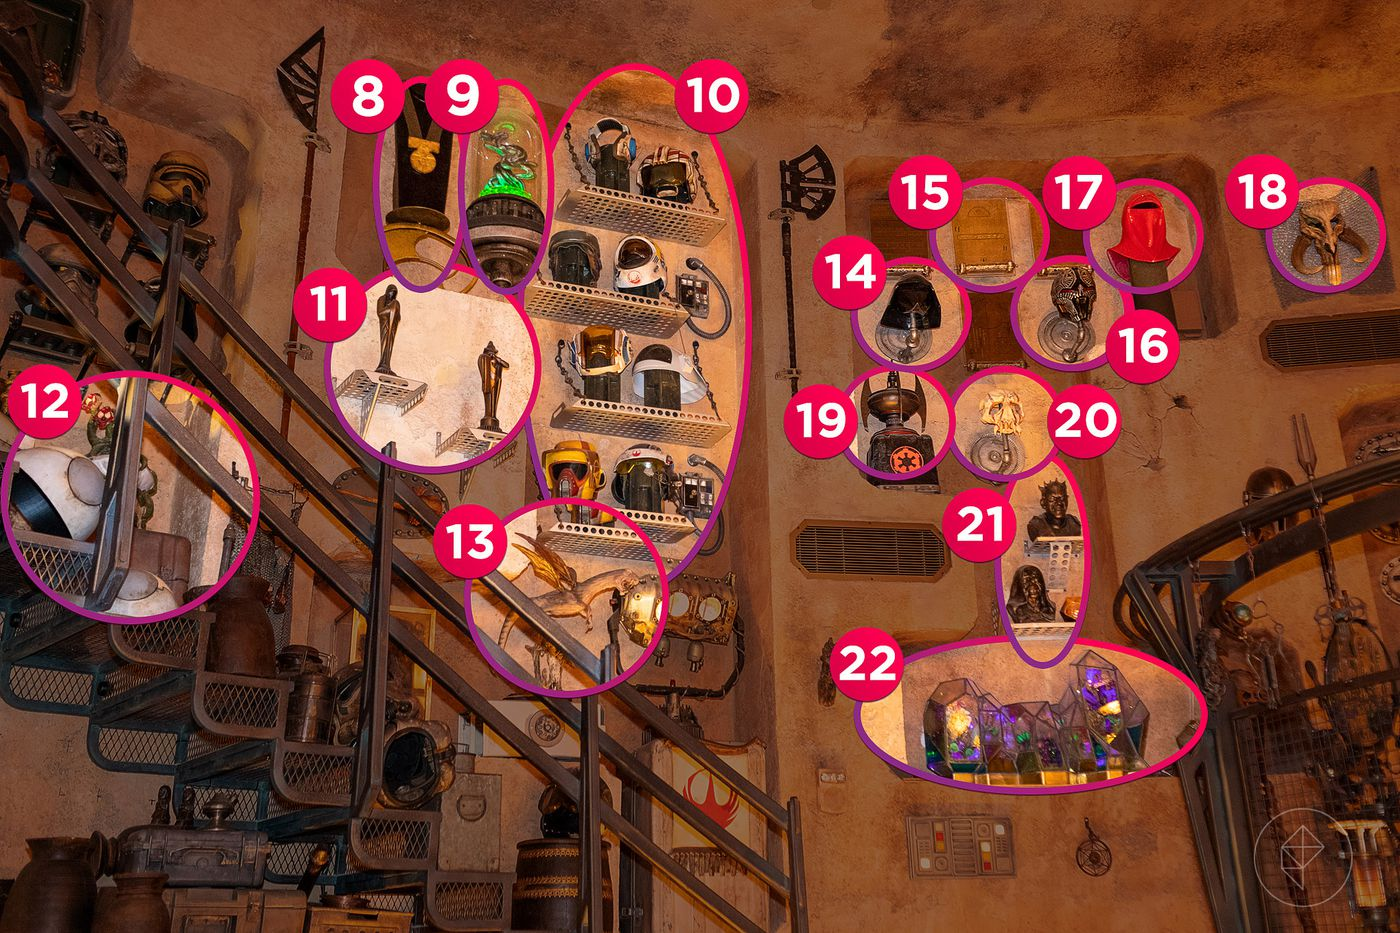 A guide to Dok-Ondar's Den of Antiquities at Star Wars: Galaxy's